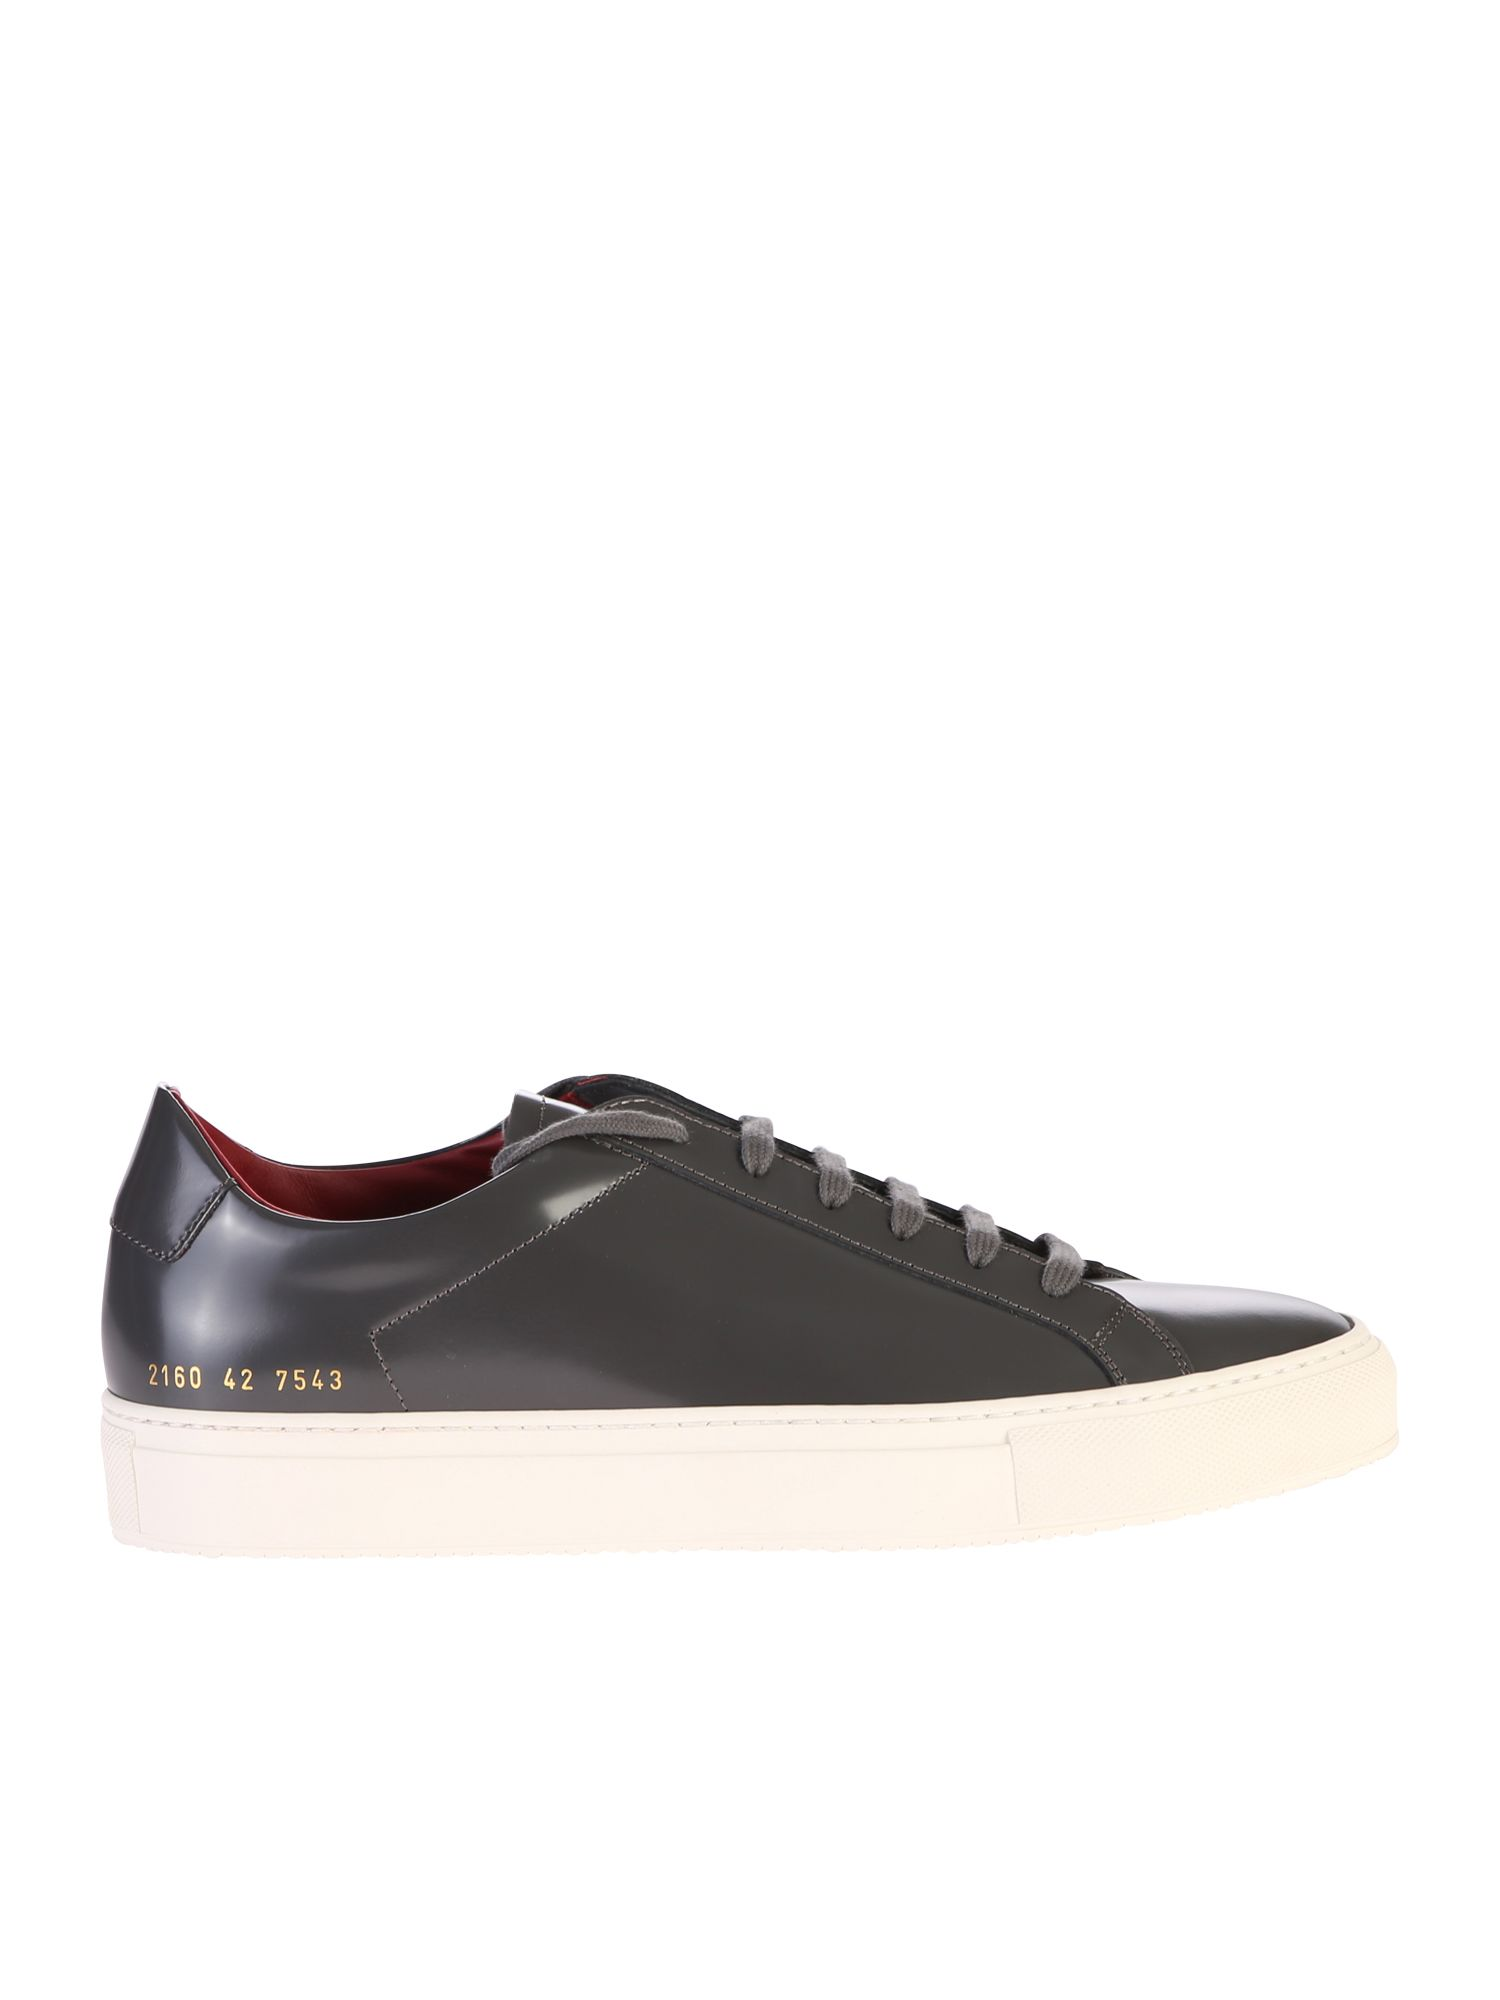 Common Projects Black Lace Up Sneakers